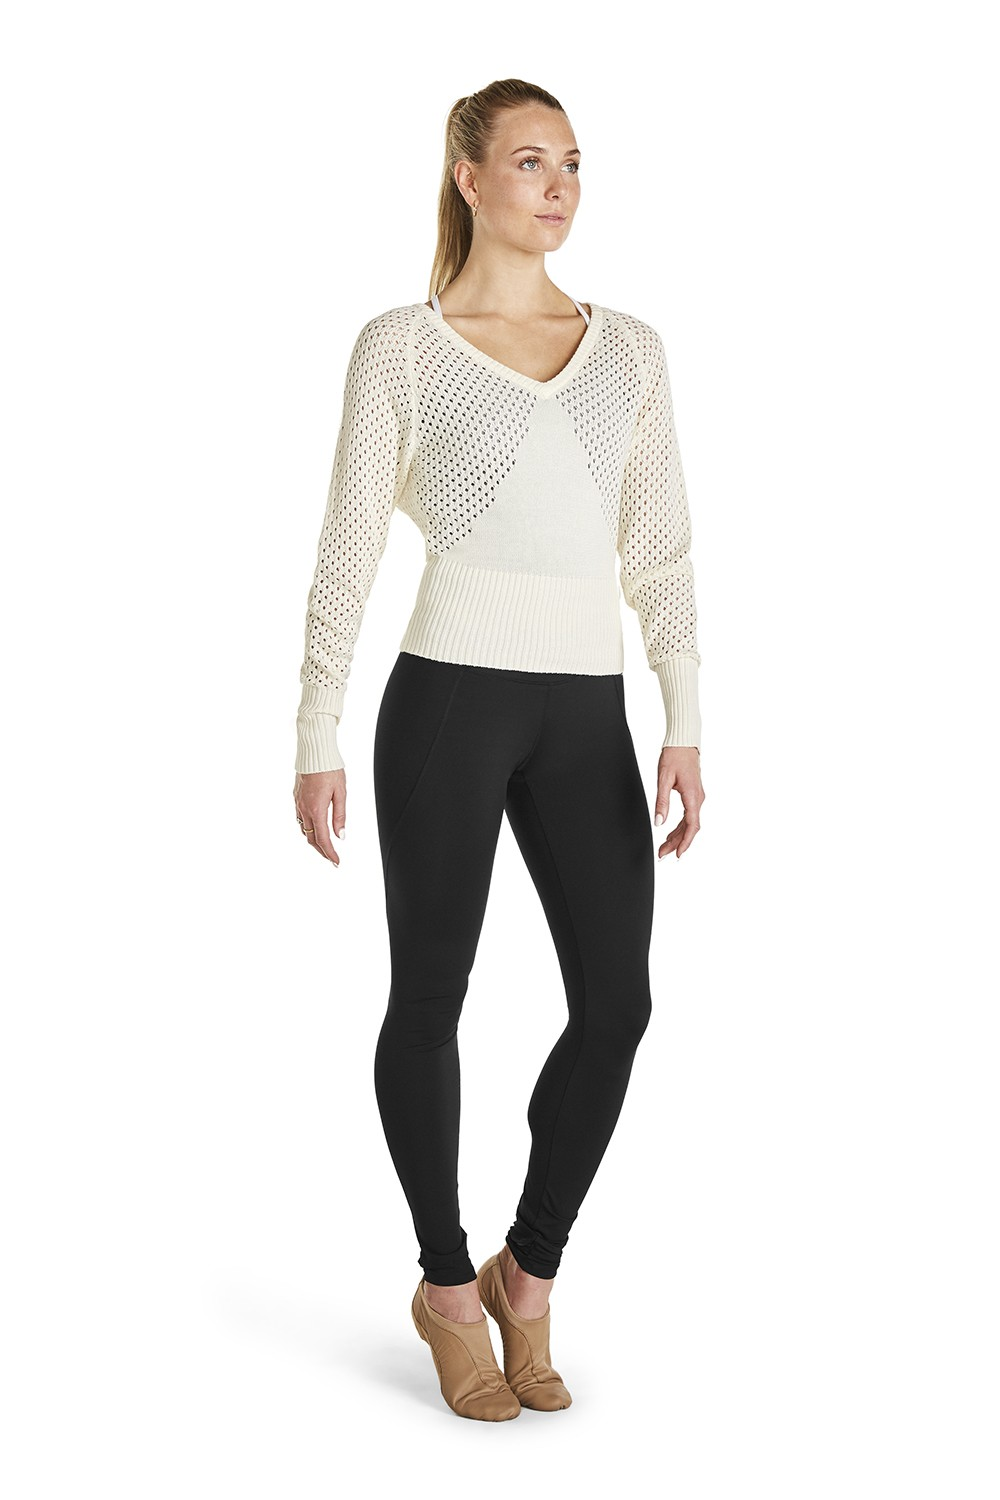 Open Knit Sweater Women's Dance Warmups